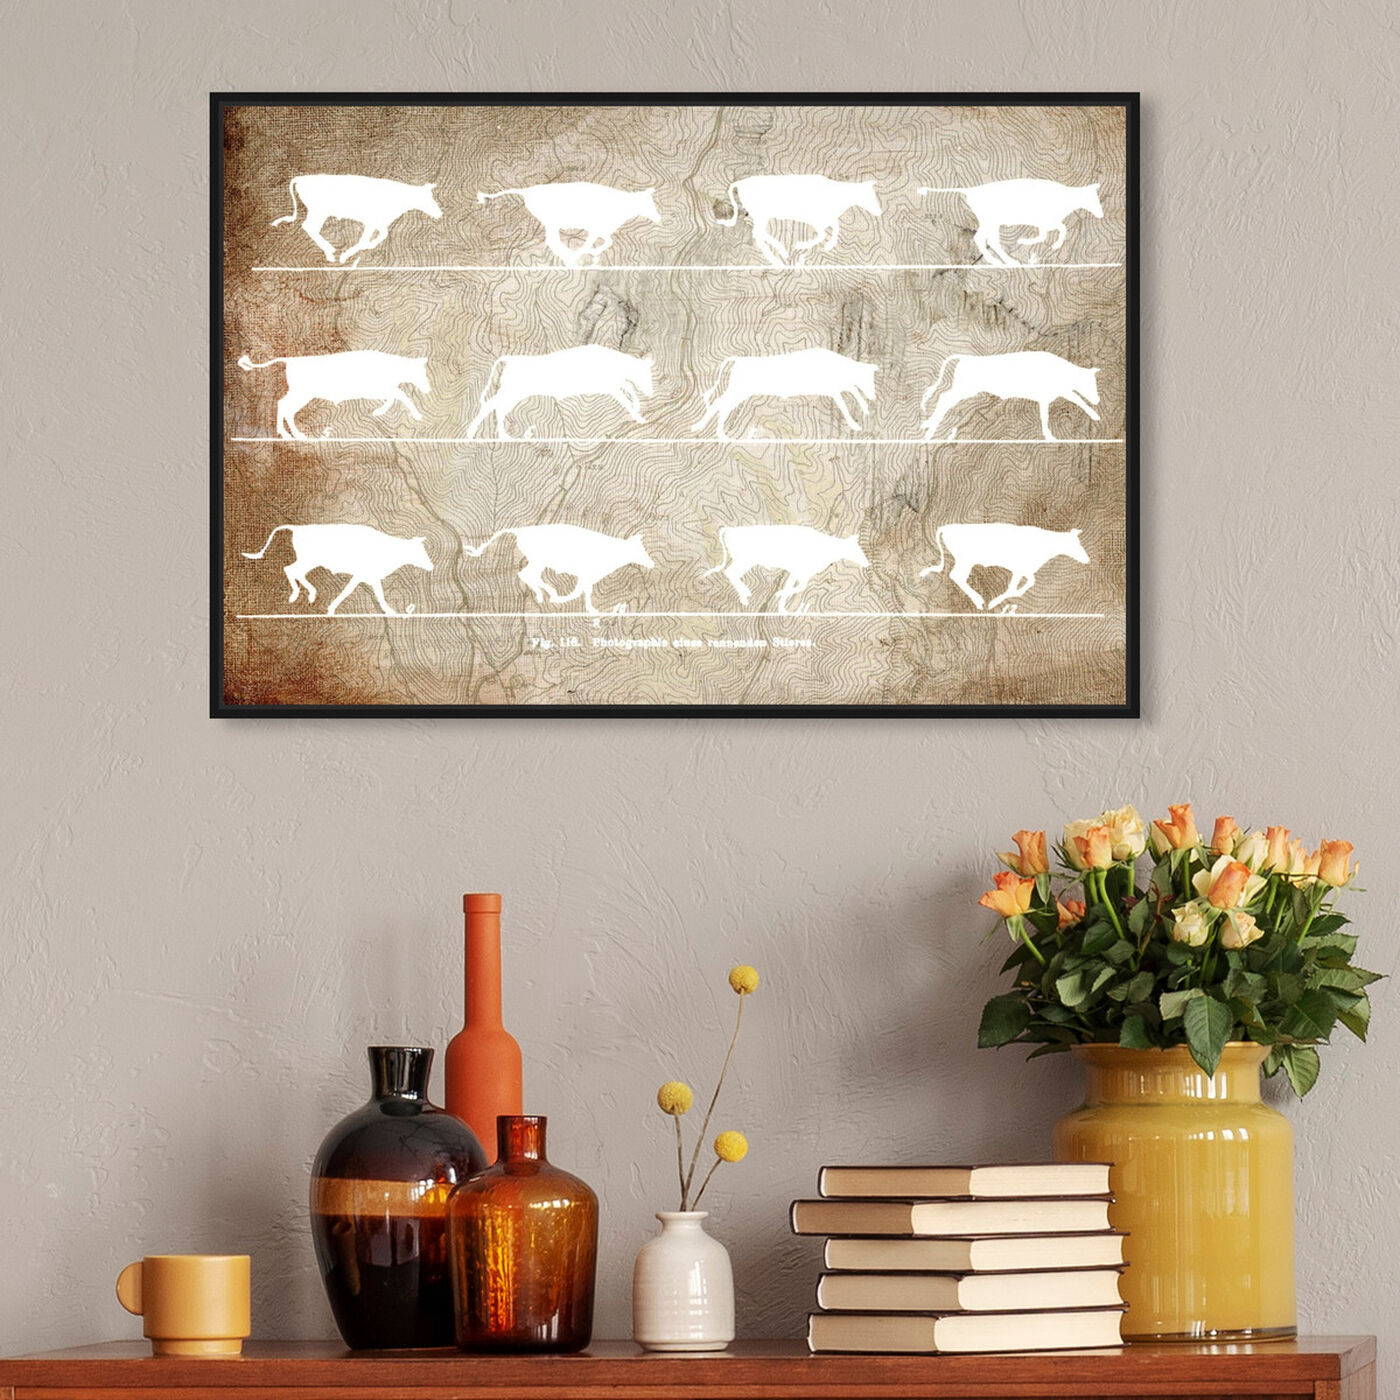 Hanging view of Cows in Motion featuring animals and farm animals art.